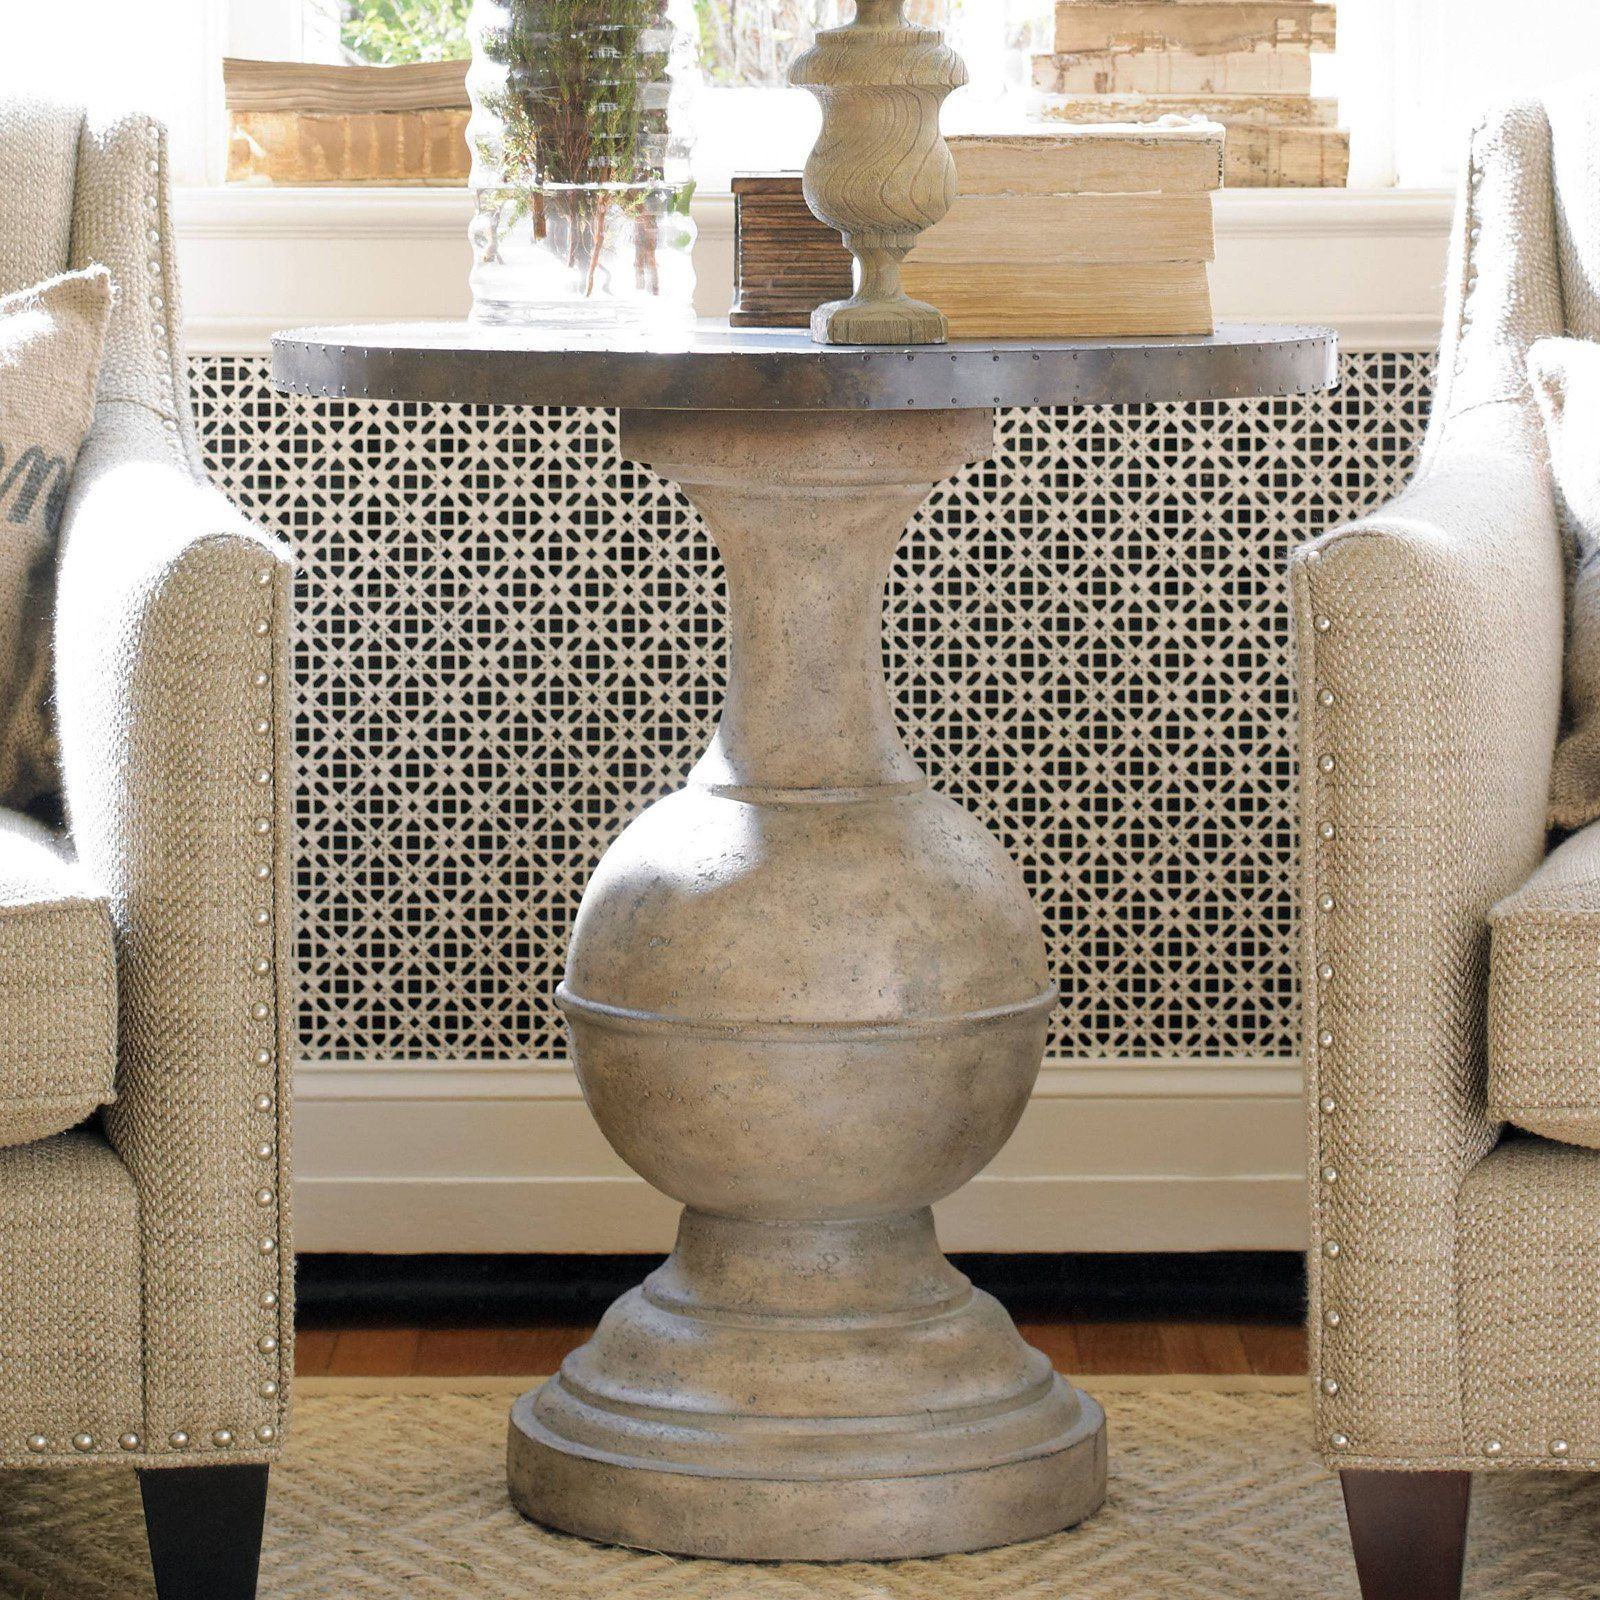 hooker furniture round accent table create its modern organic with drawer masterpiece the pairs rustic brass top antique white mosaic patio rod iron hampton bay wicker flexible